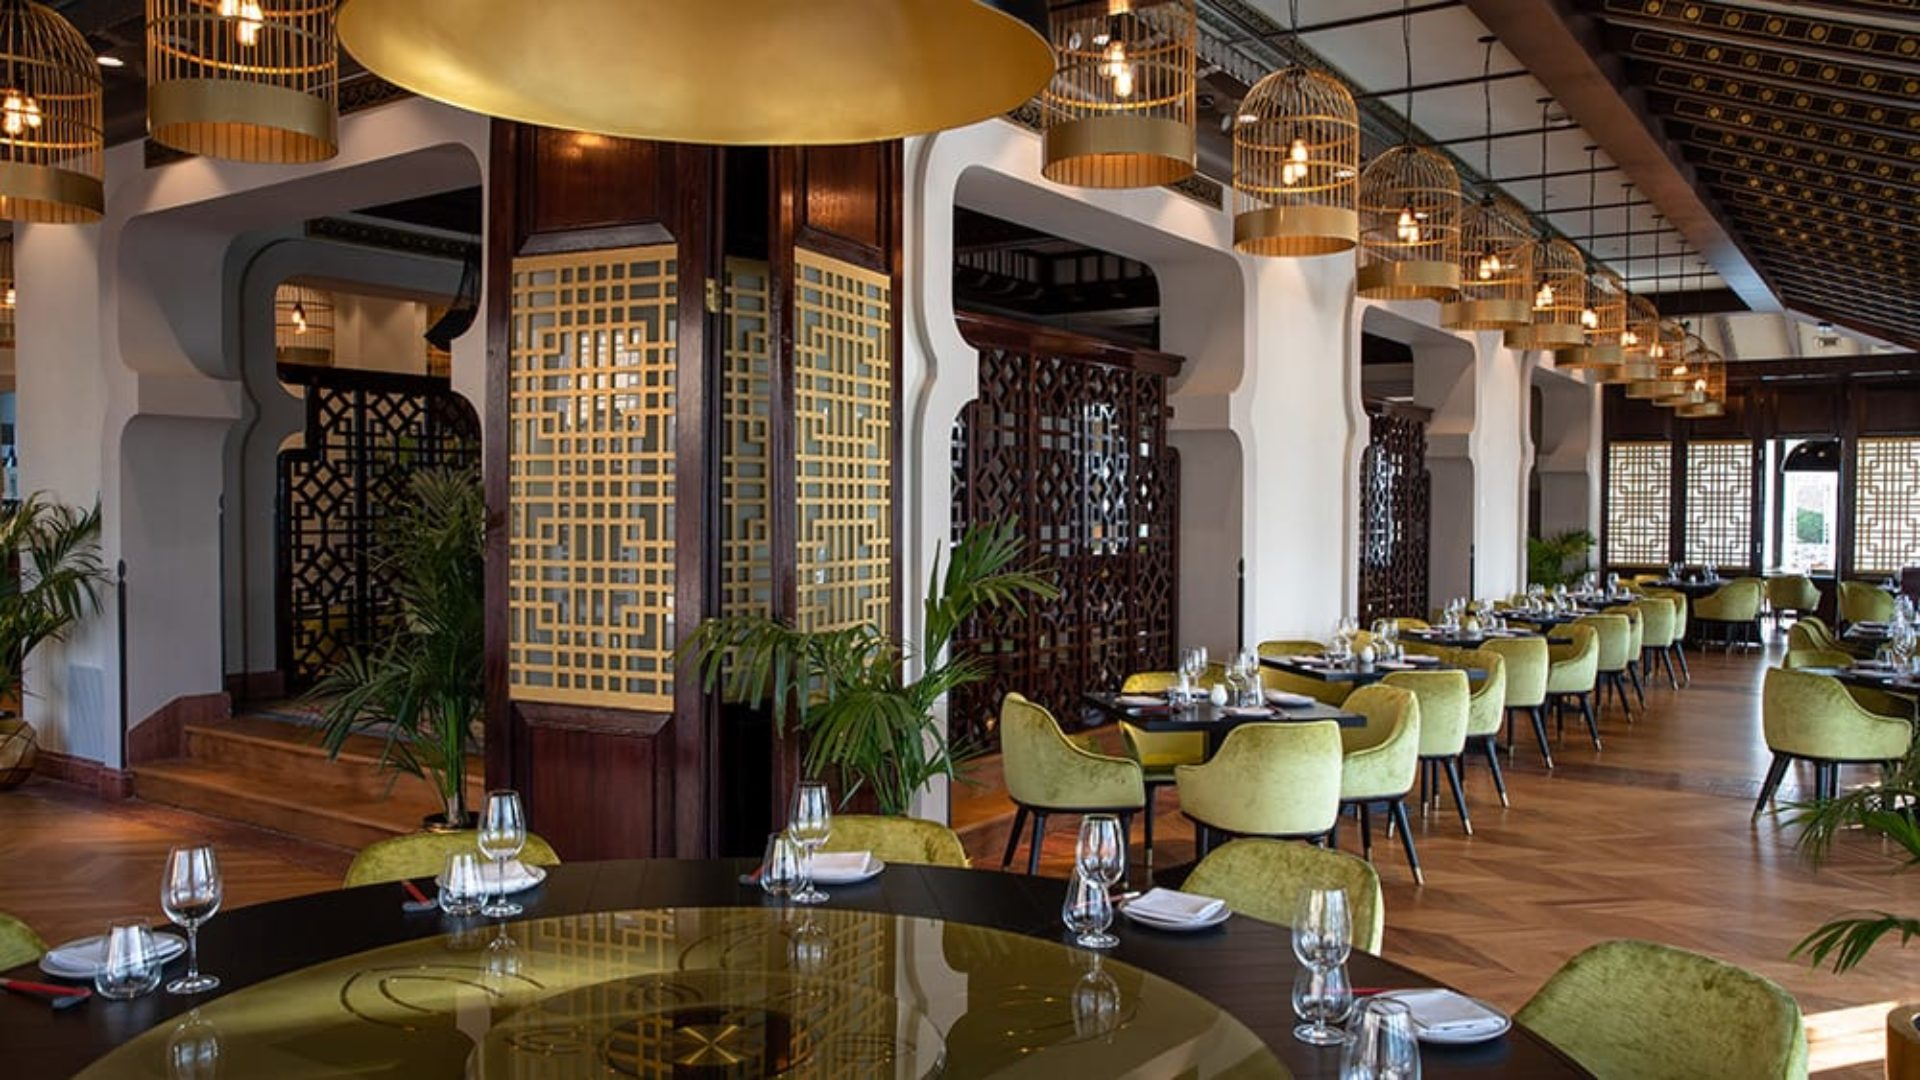 Indoor dining at Zheng He's Restaurant at Jumeirah Mina A'Salam